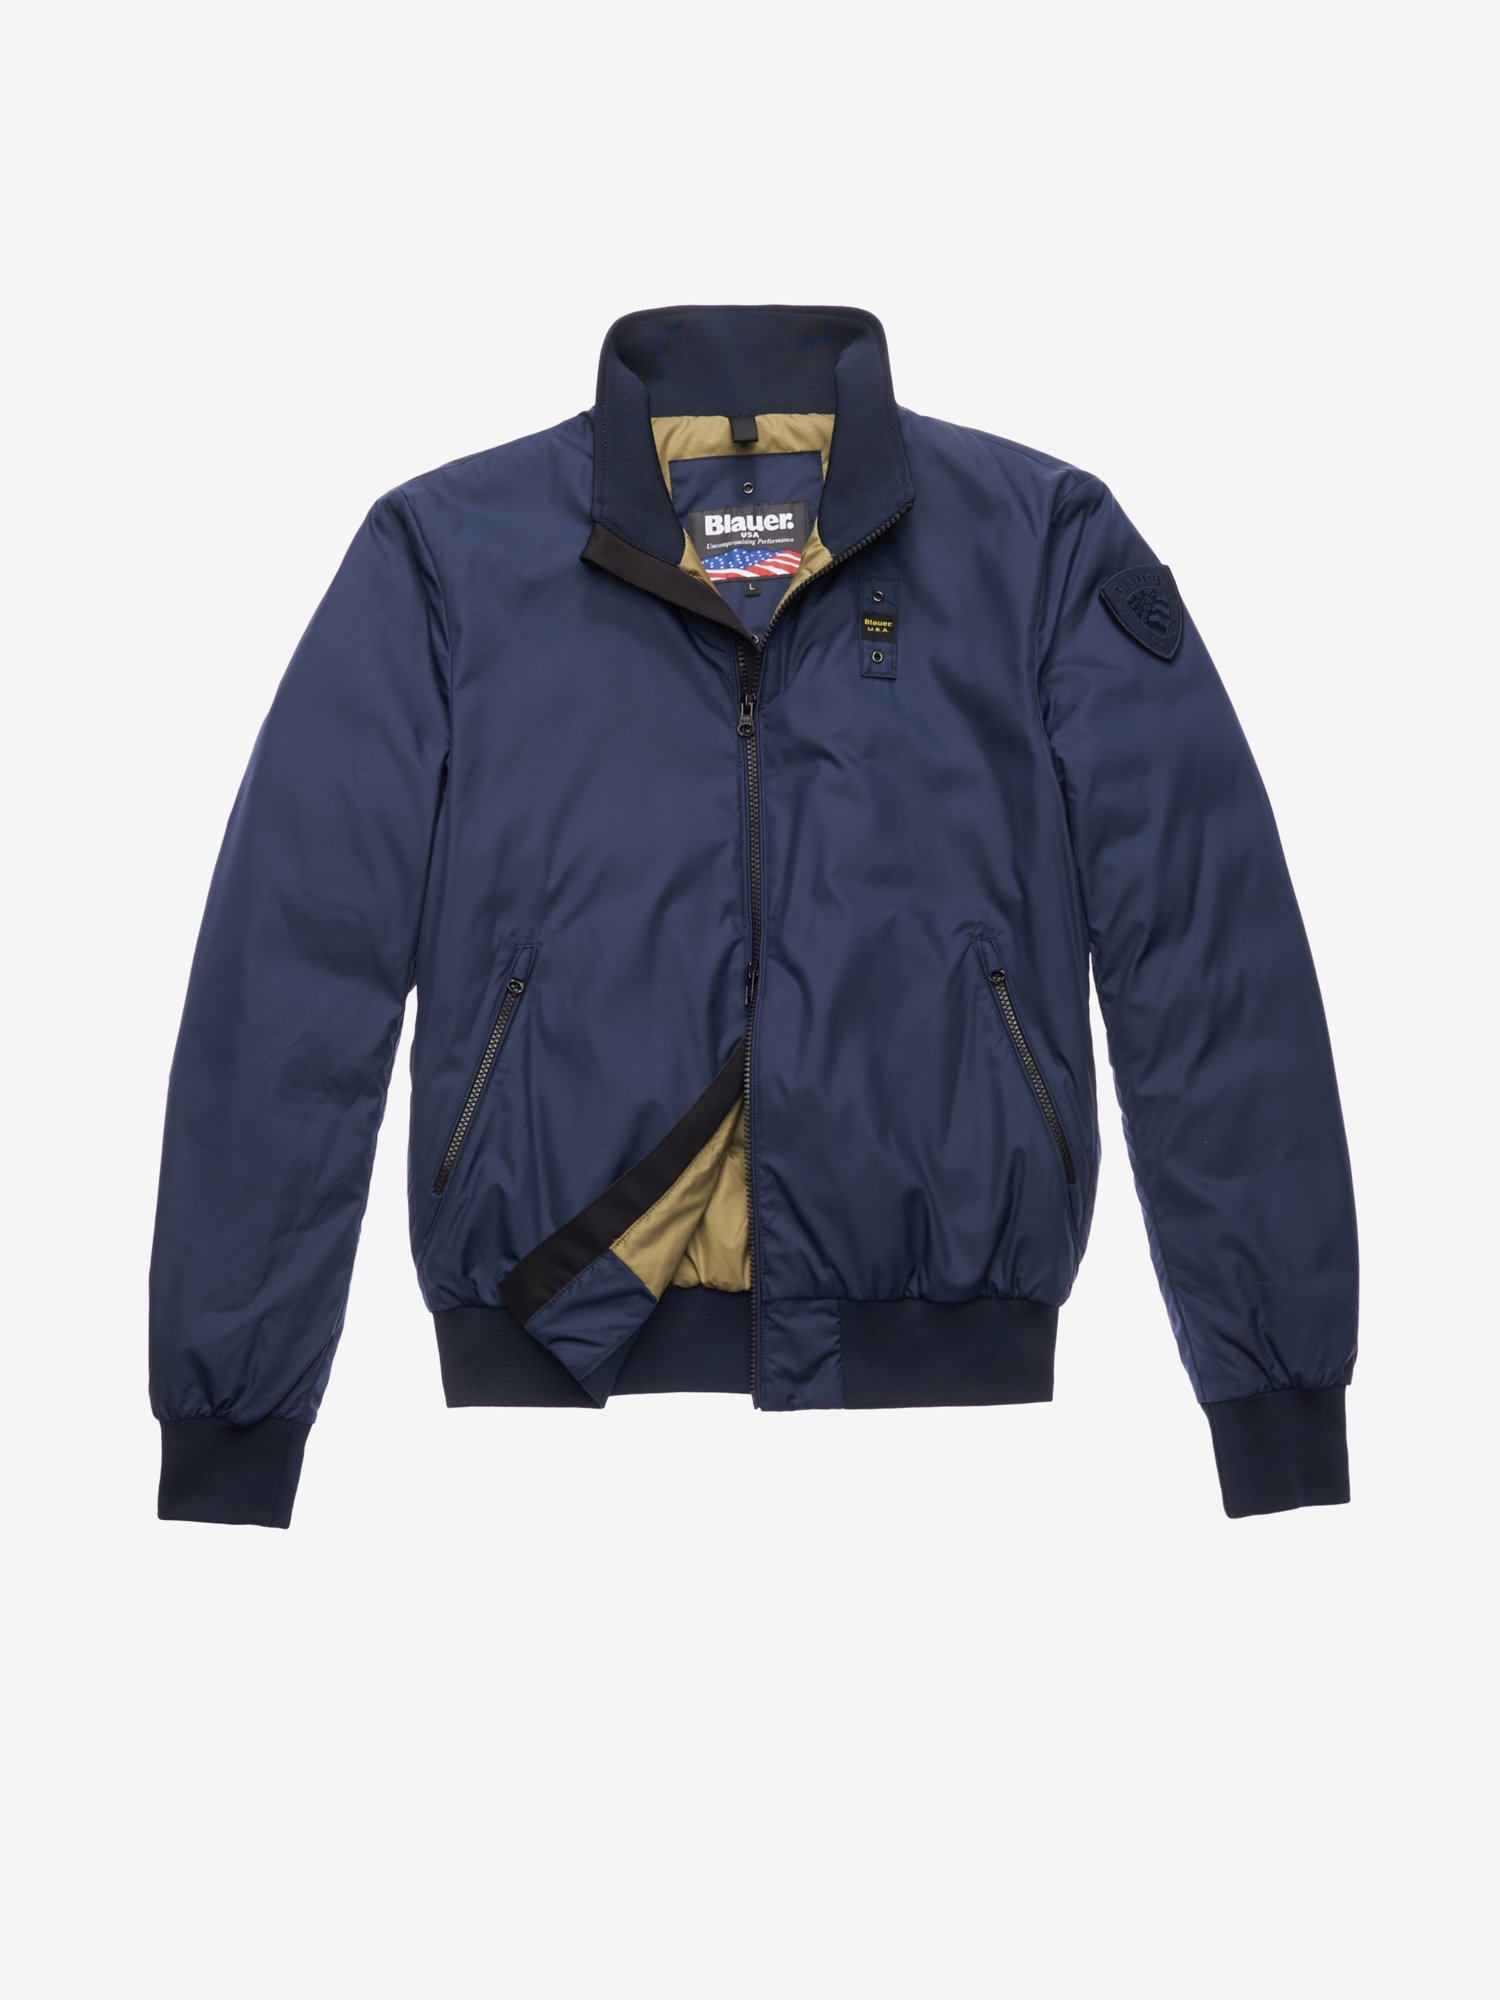 GREEN BOMBER-STYLE DOWN JACKET - Blauer